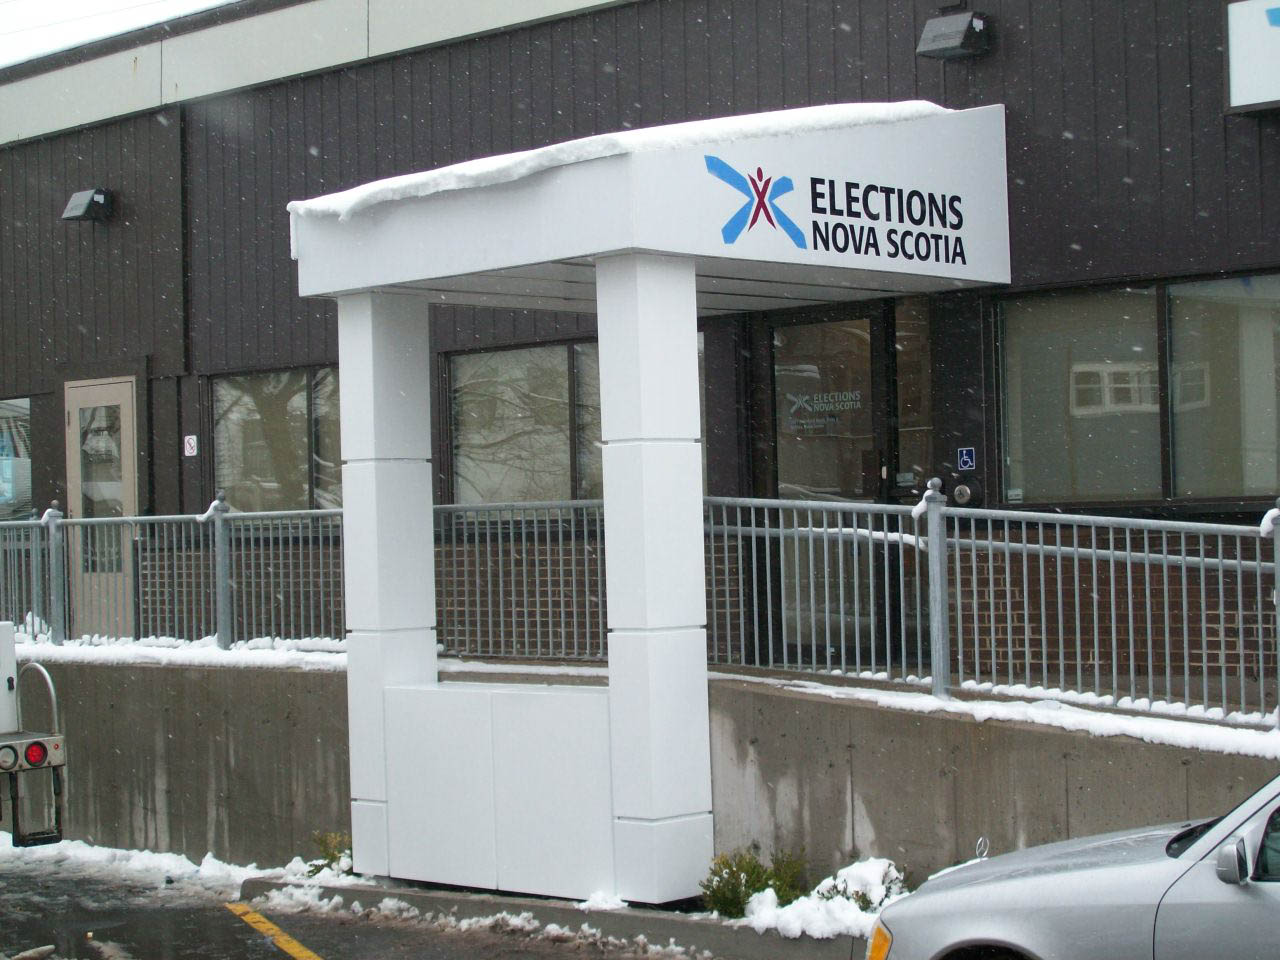 Elections NS Entrance Canopy.jpg